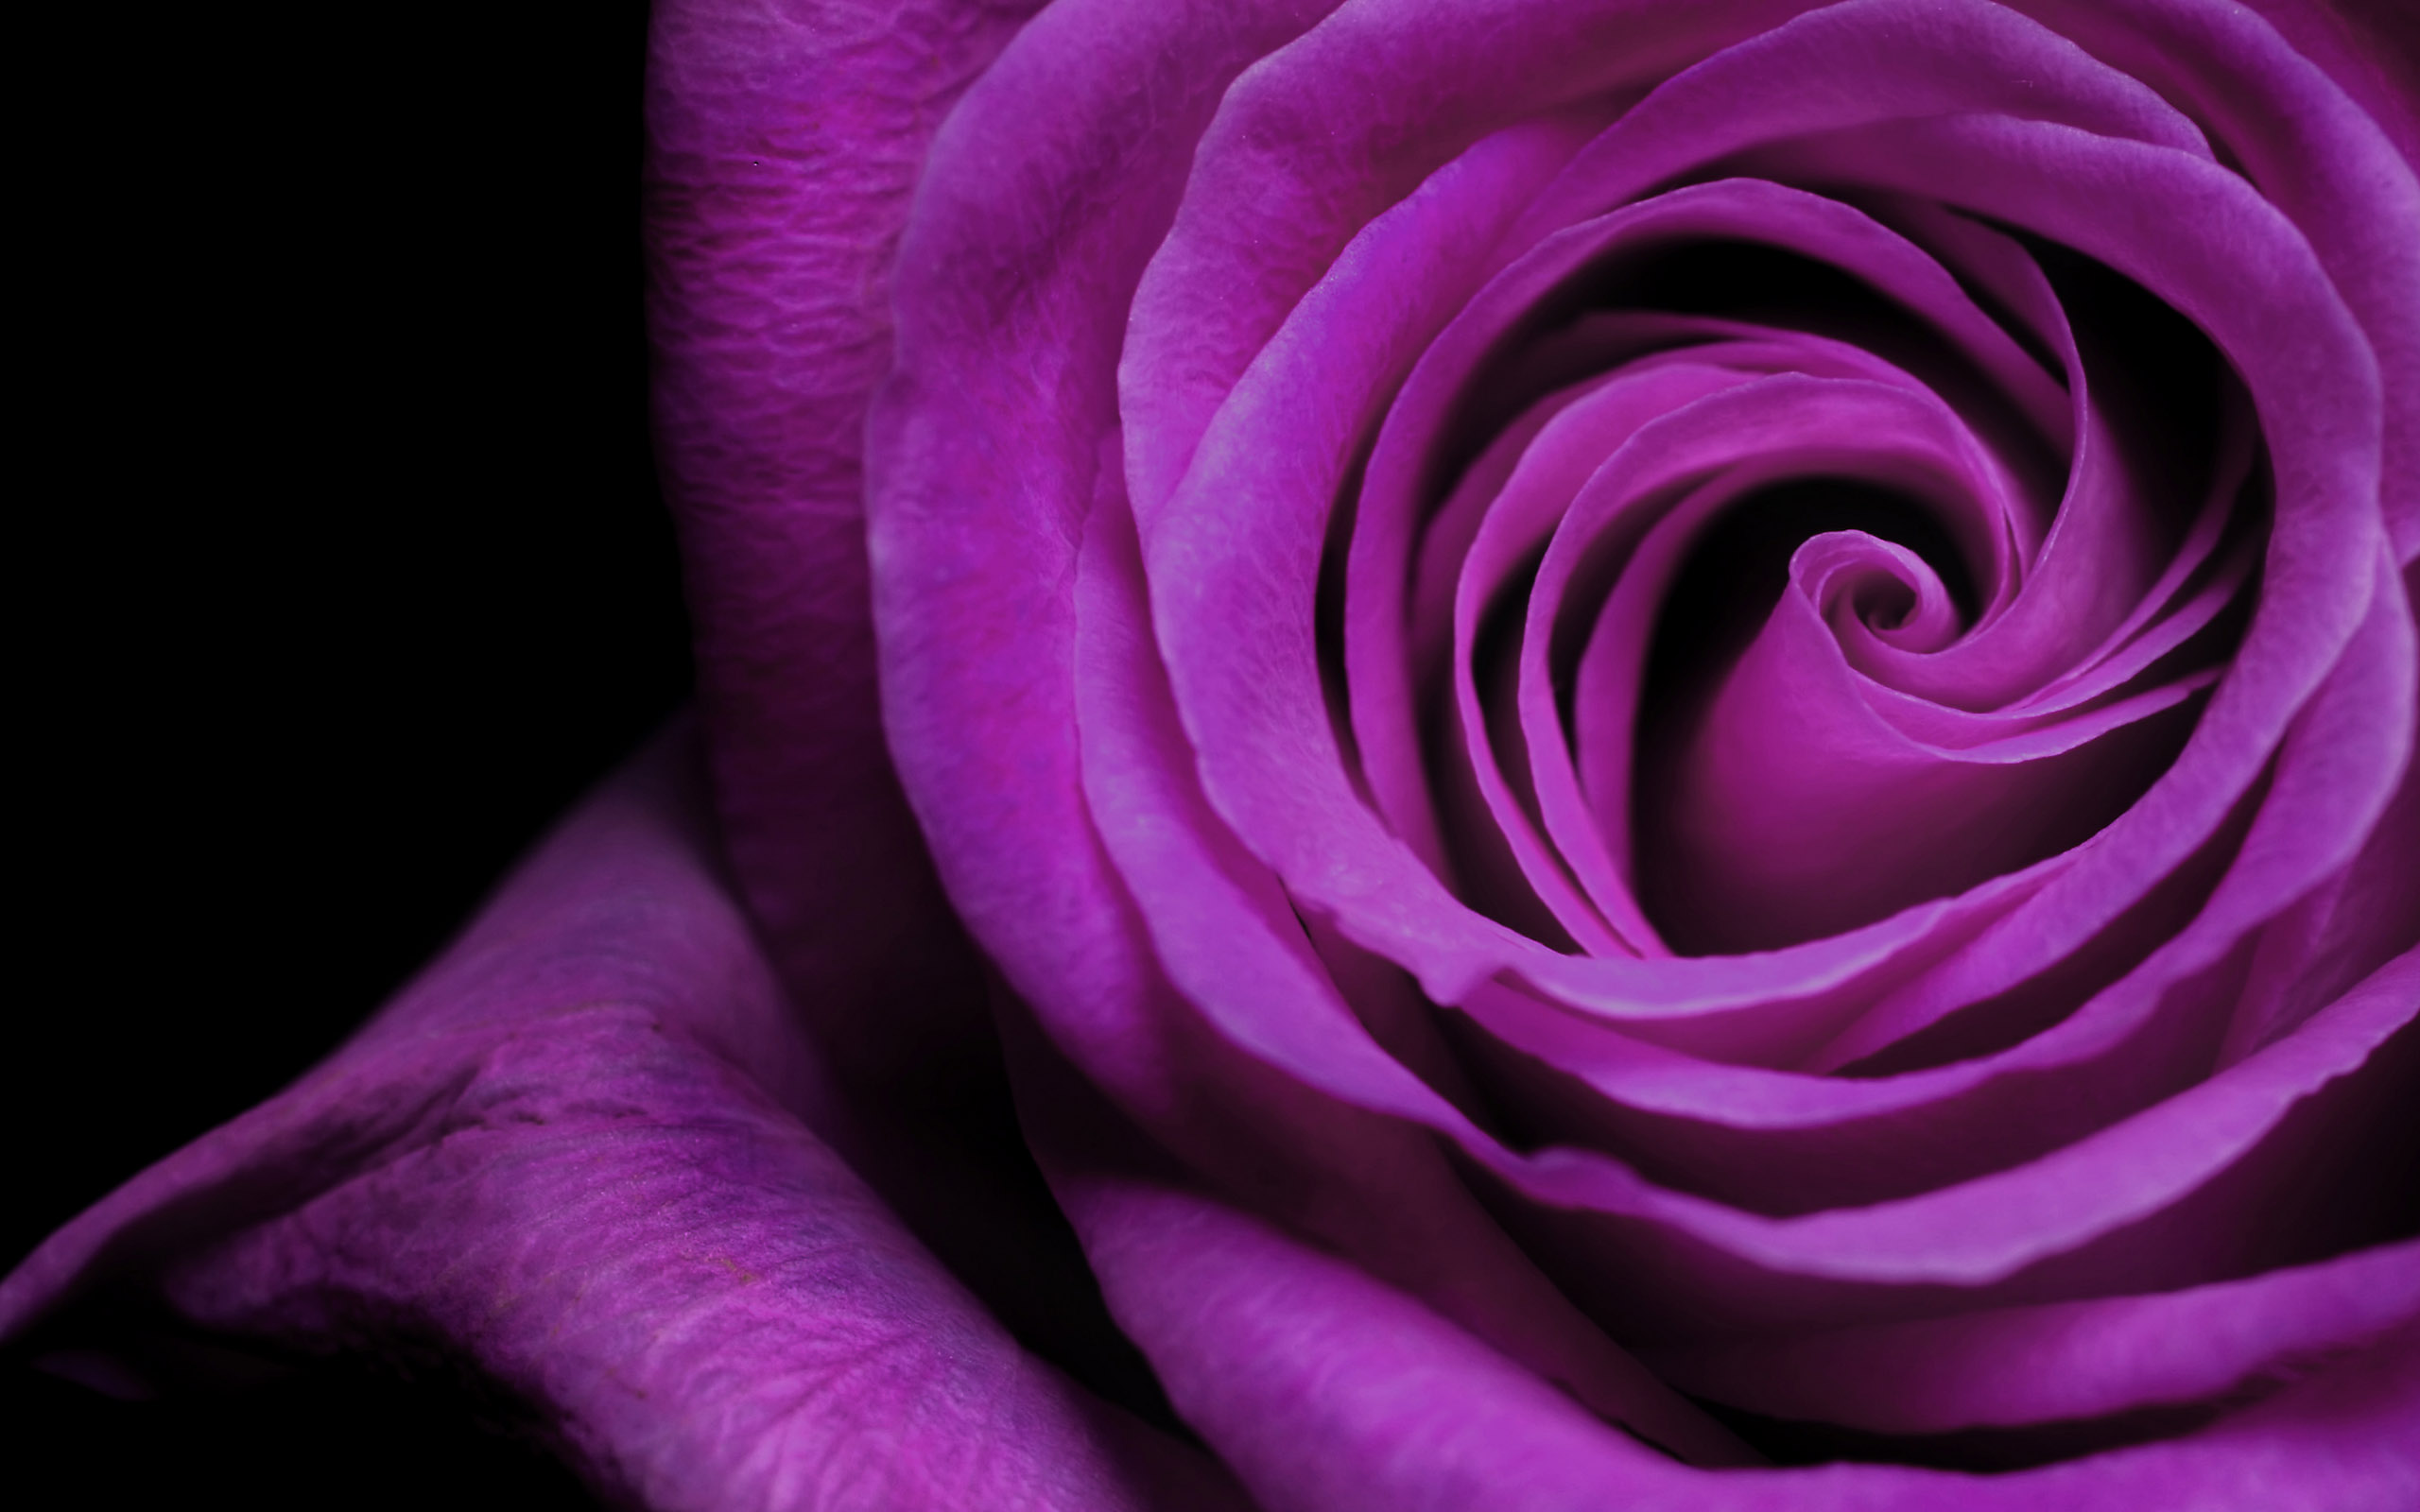 Purple Rose Bud Flower Wallpaper